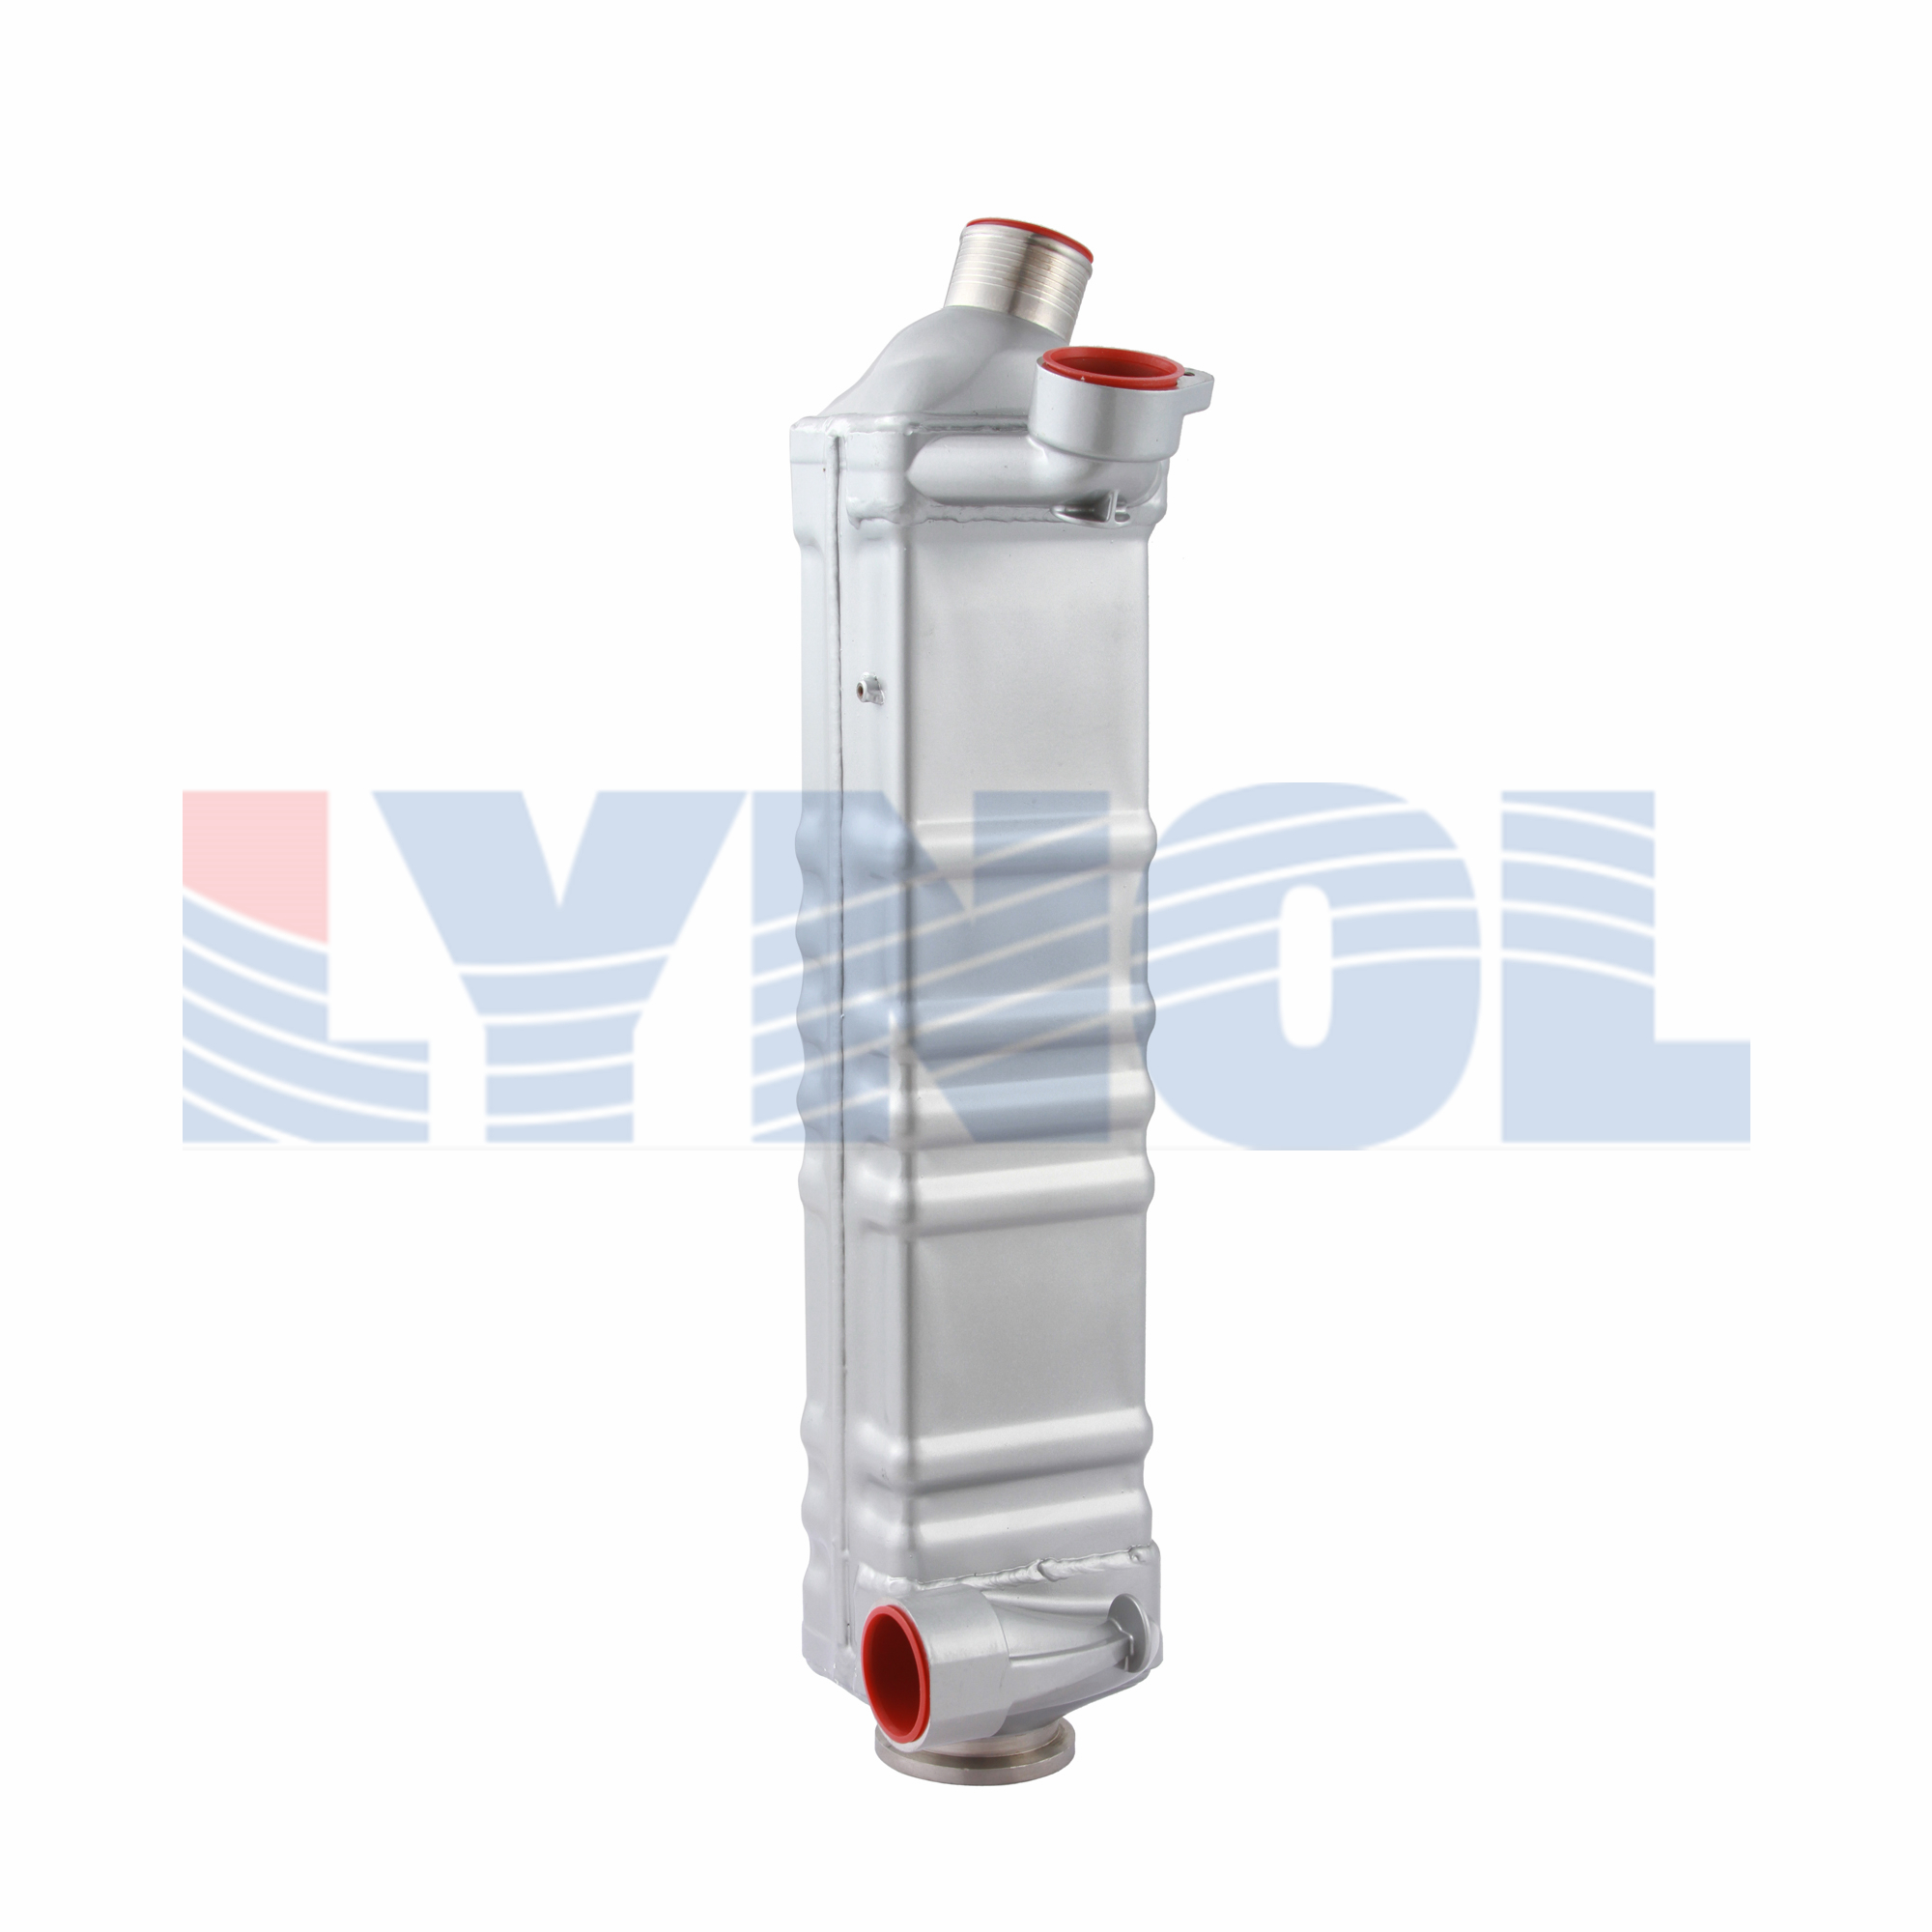 4102001 - EGR - 08-10 Volvo D13 Mack Mp8 EGR Cooler